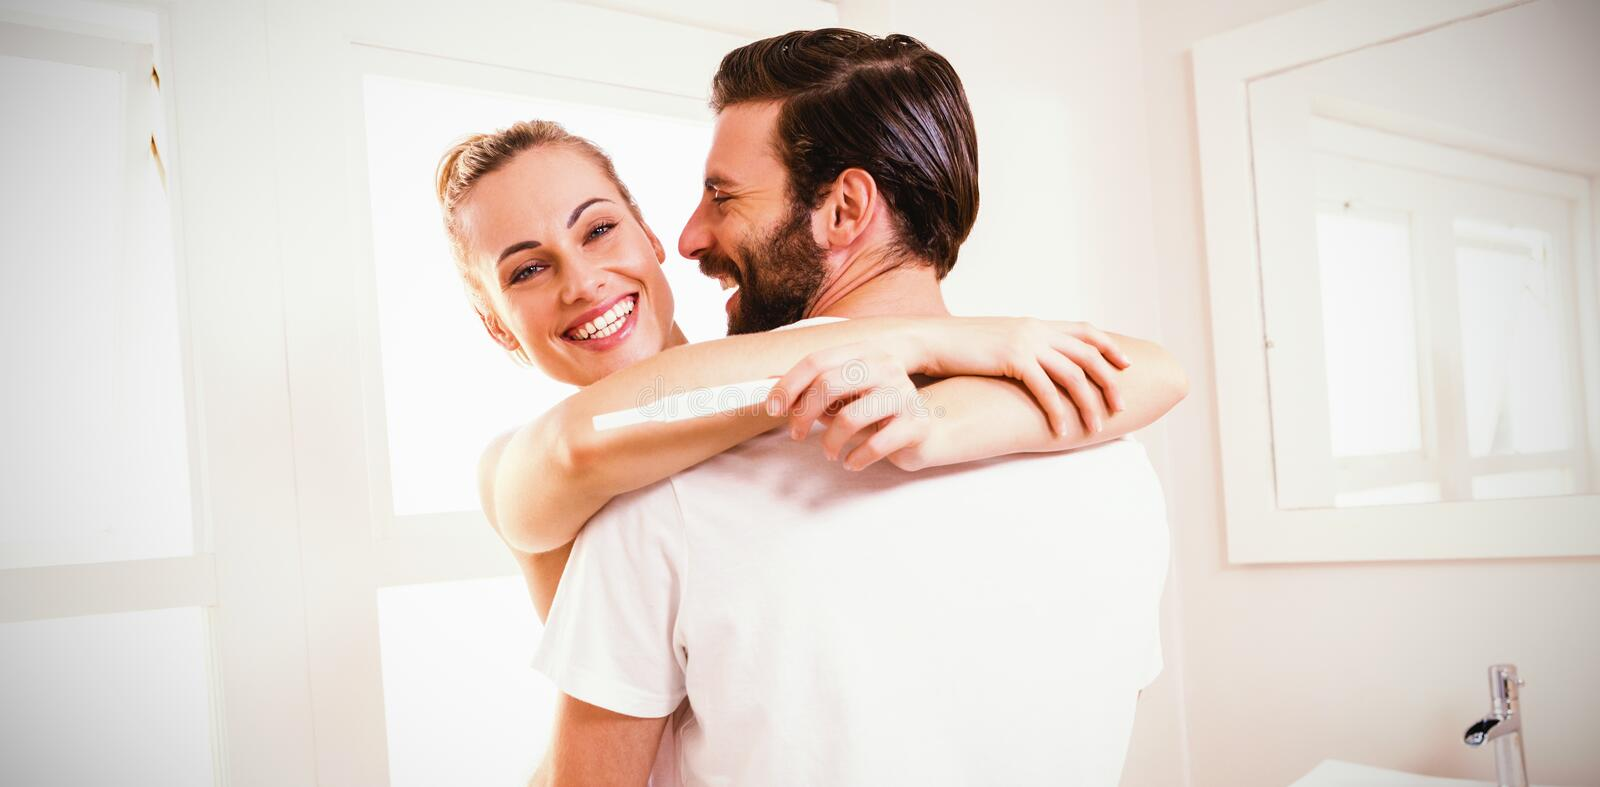 Woman holding pregnancy test while embracing man stock photo